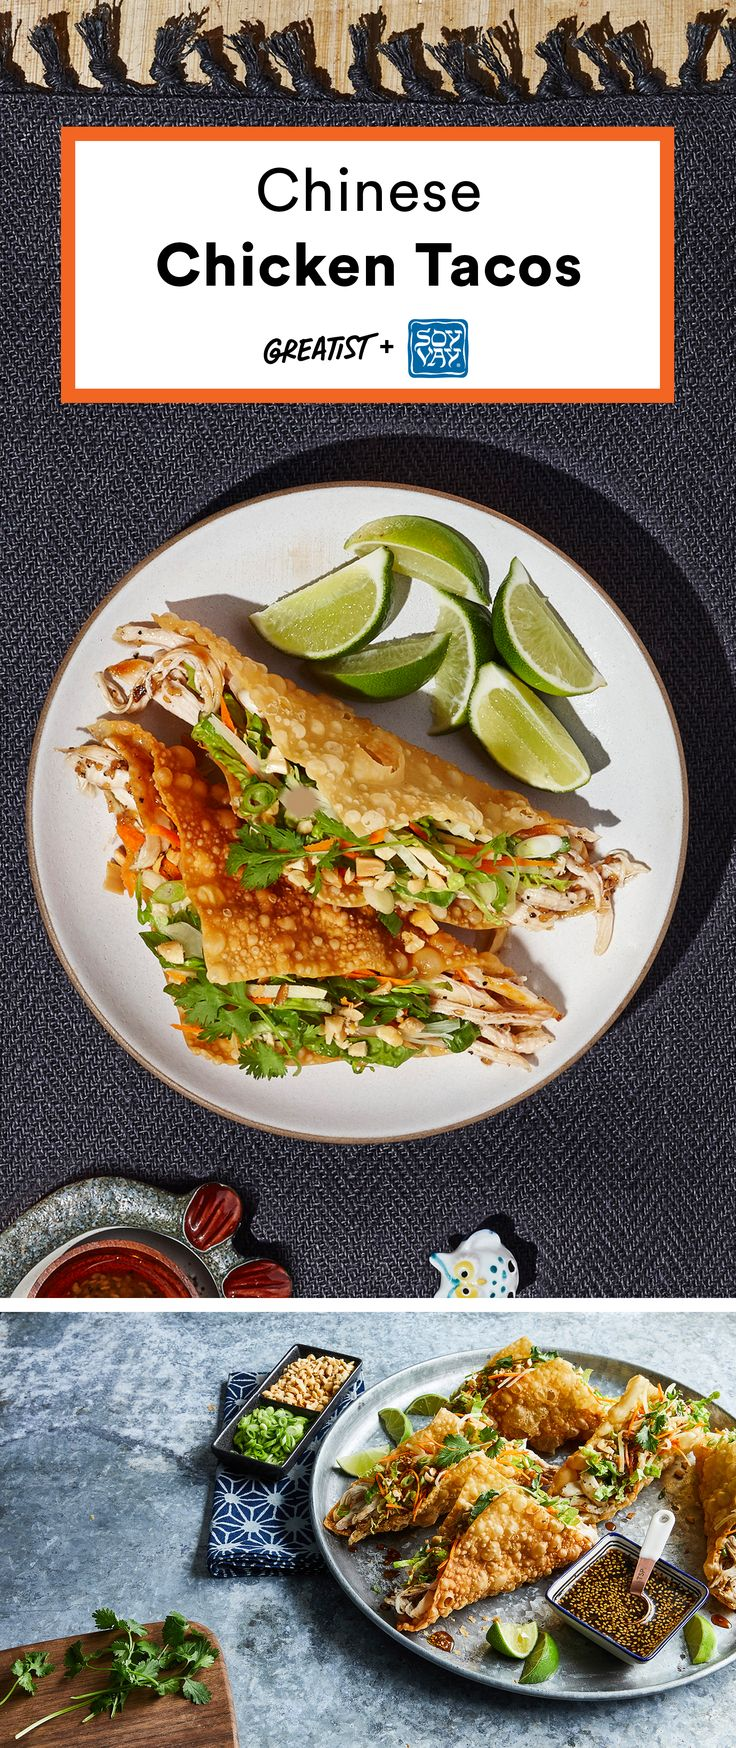 Chinese Chicken Tacos @soyvay #partner